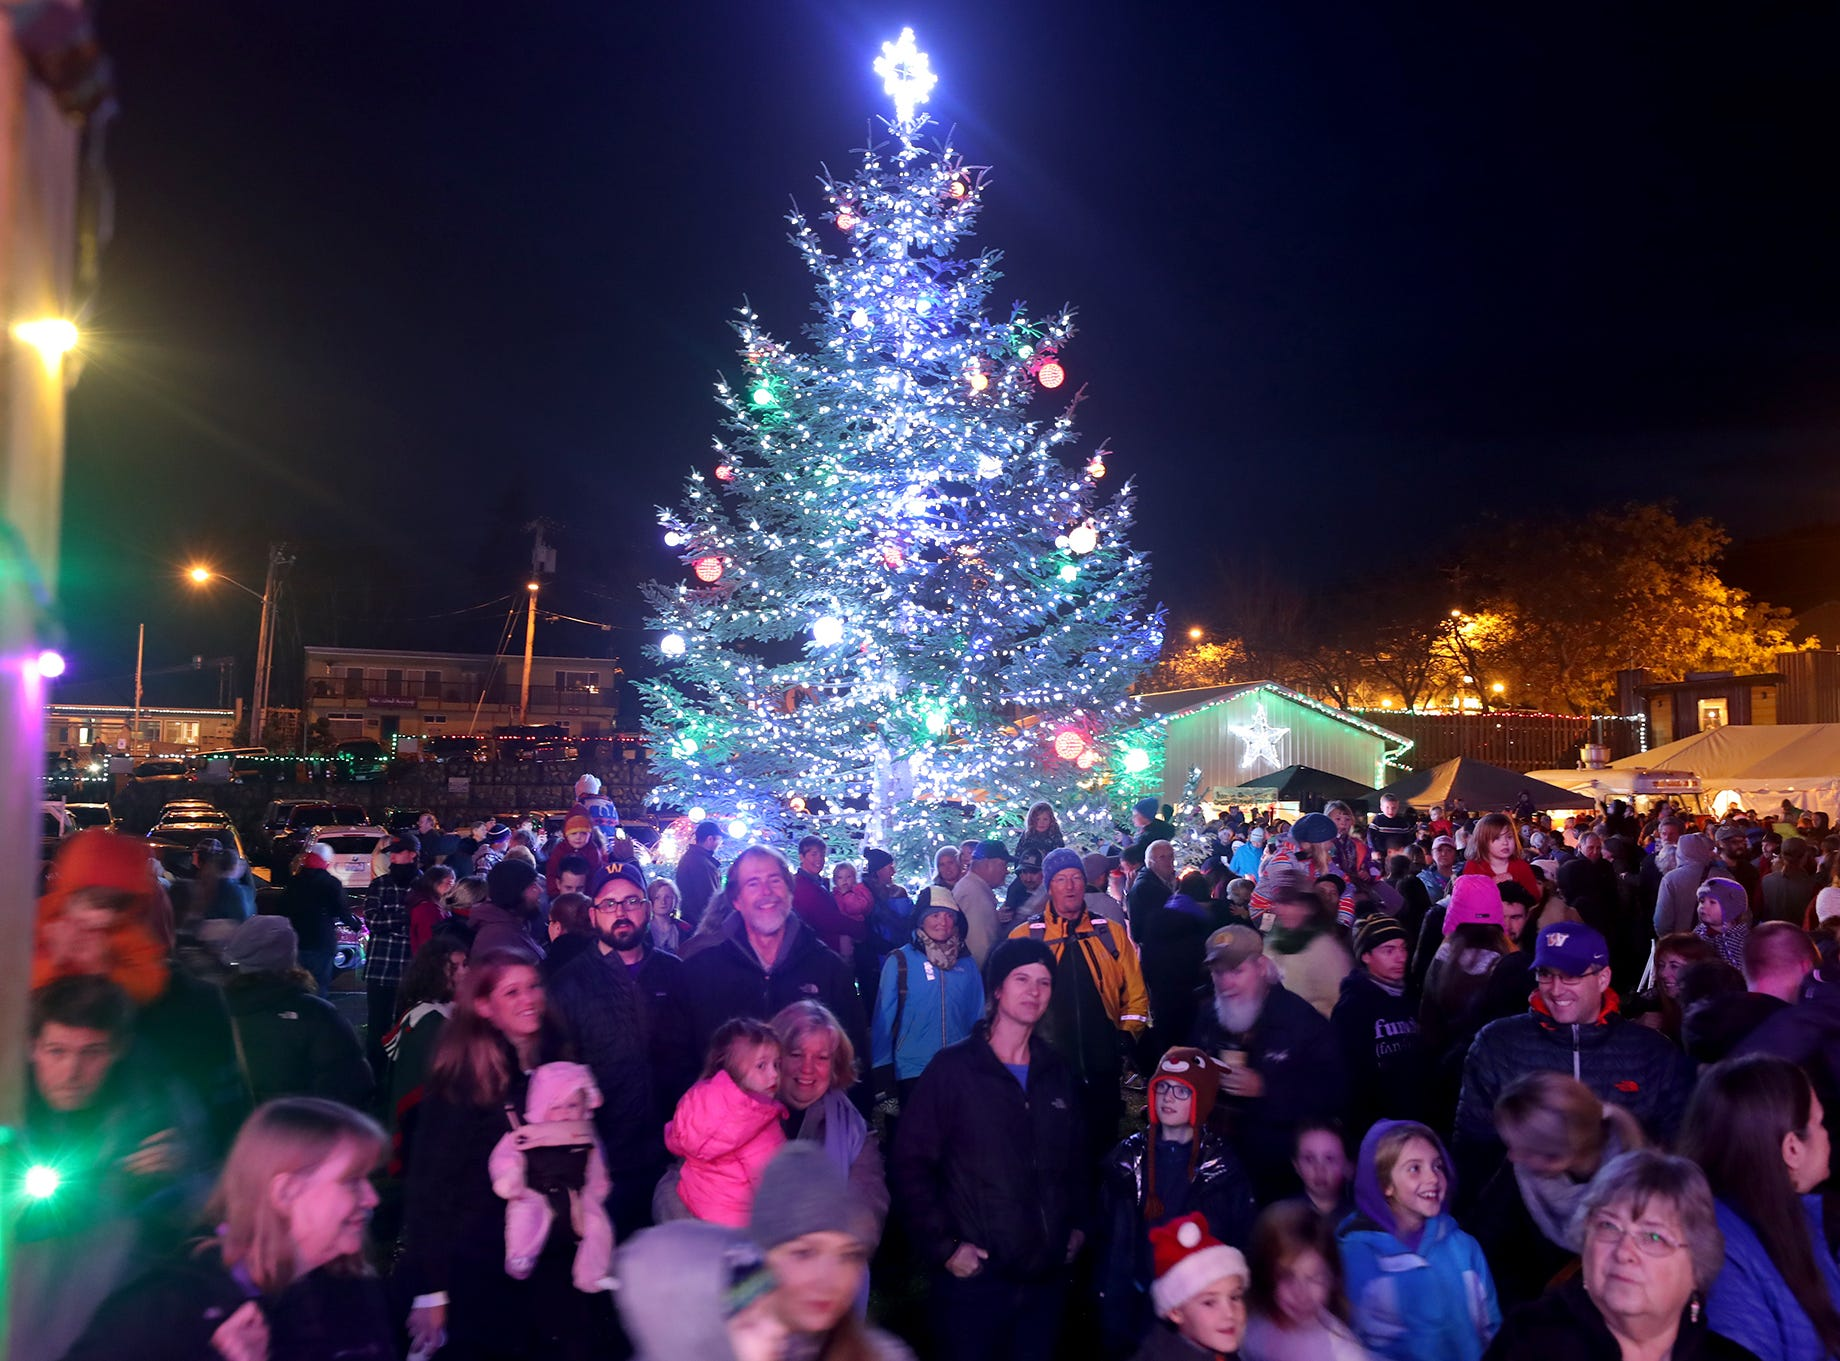 The Kingston Cove Christmas celebration on Saturday, December 1, 2018, at Mike Wallace Park in Kingston.The highlight of the event was the arrival of Santa and the Christmas tree, and park lighting. Tree is turned on in front of a large crowd at Mike Wallace park in Kingston.